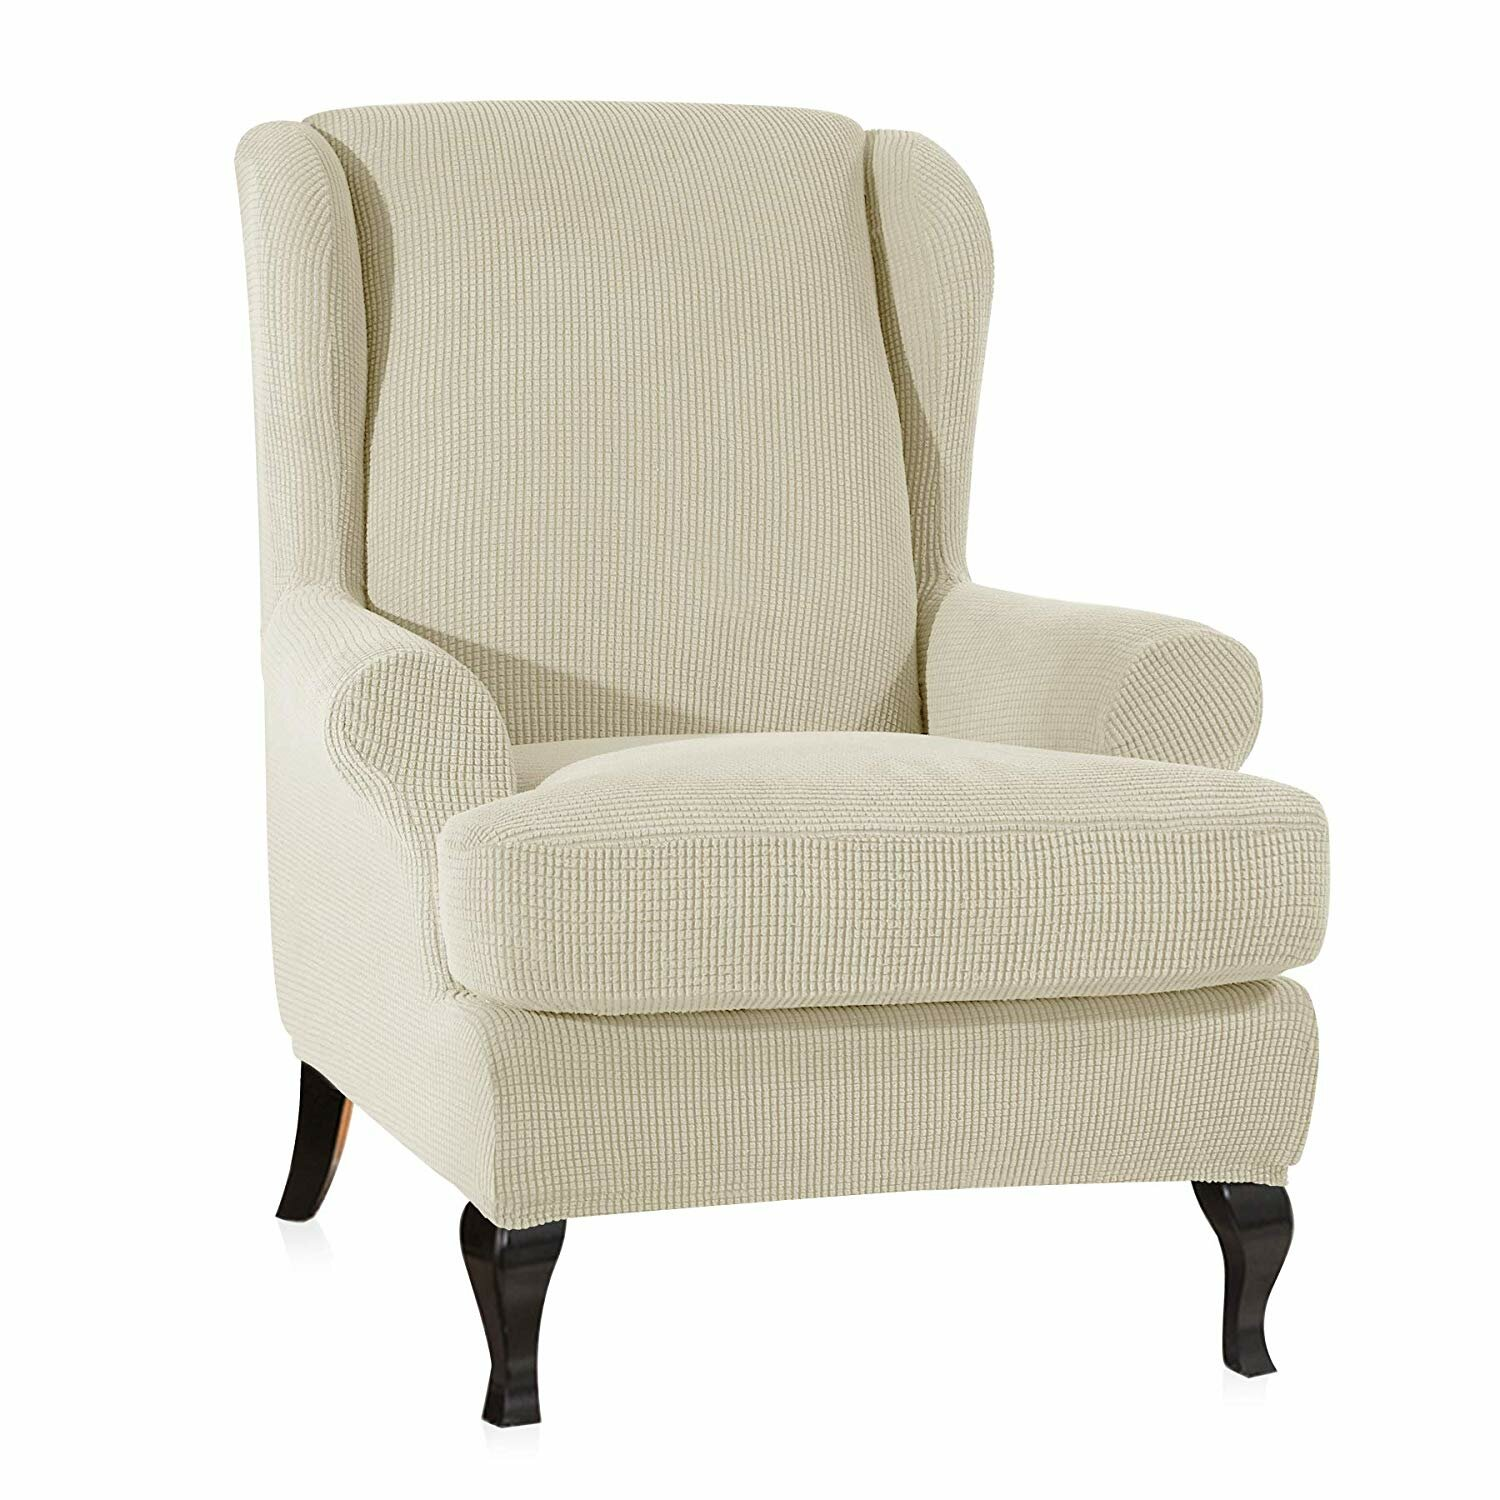 Terrific Stretch Jacquard Spandex T Cushion Wingback Slipcover Pdpeps Interior Chair Design Pdpepsorg